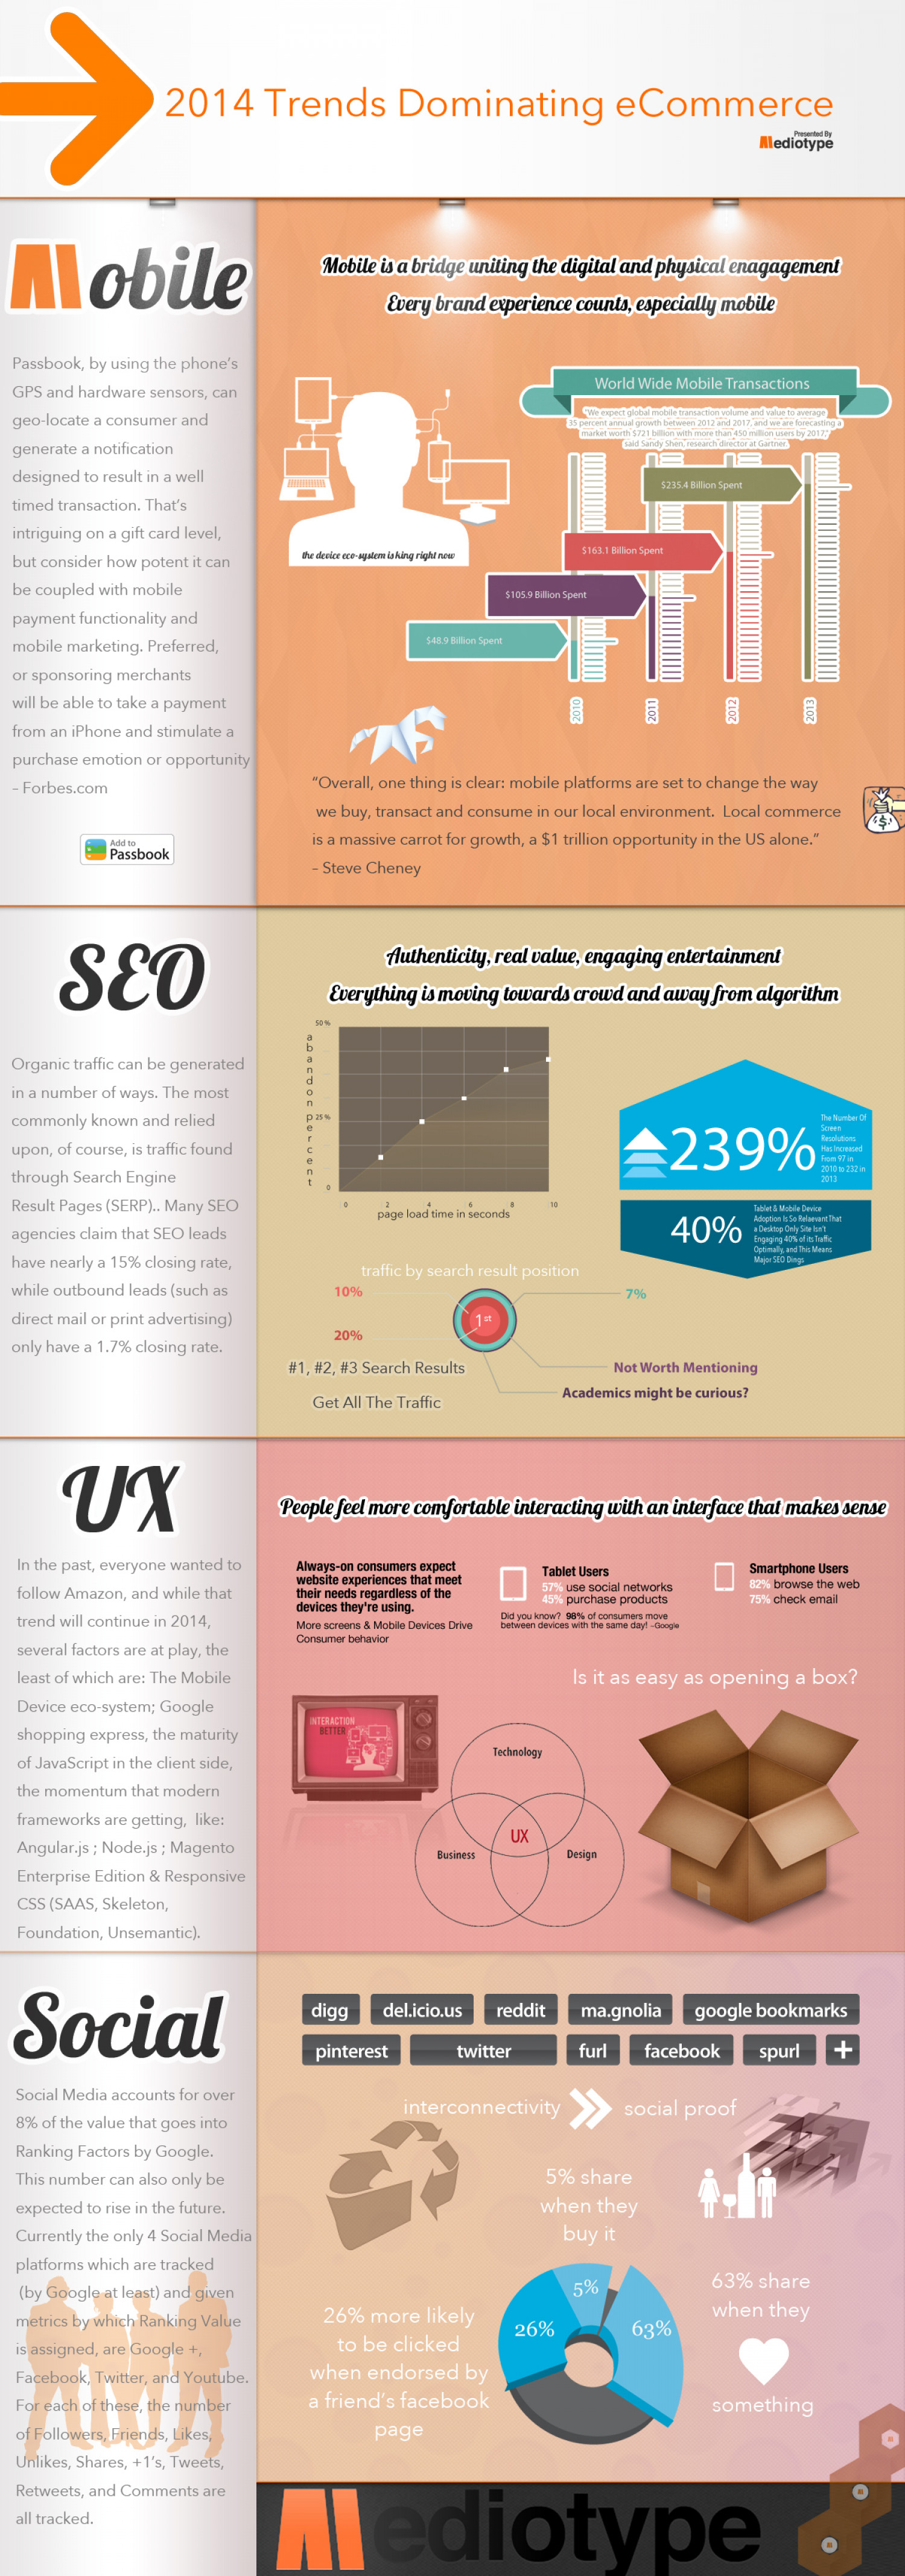 2014 Trends Dominating eCommerce Infographic